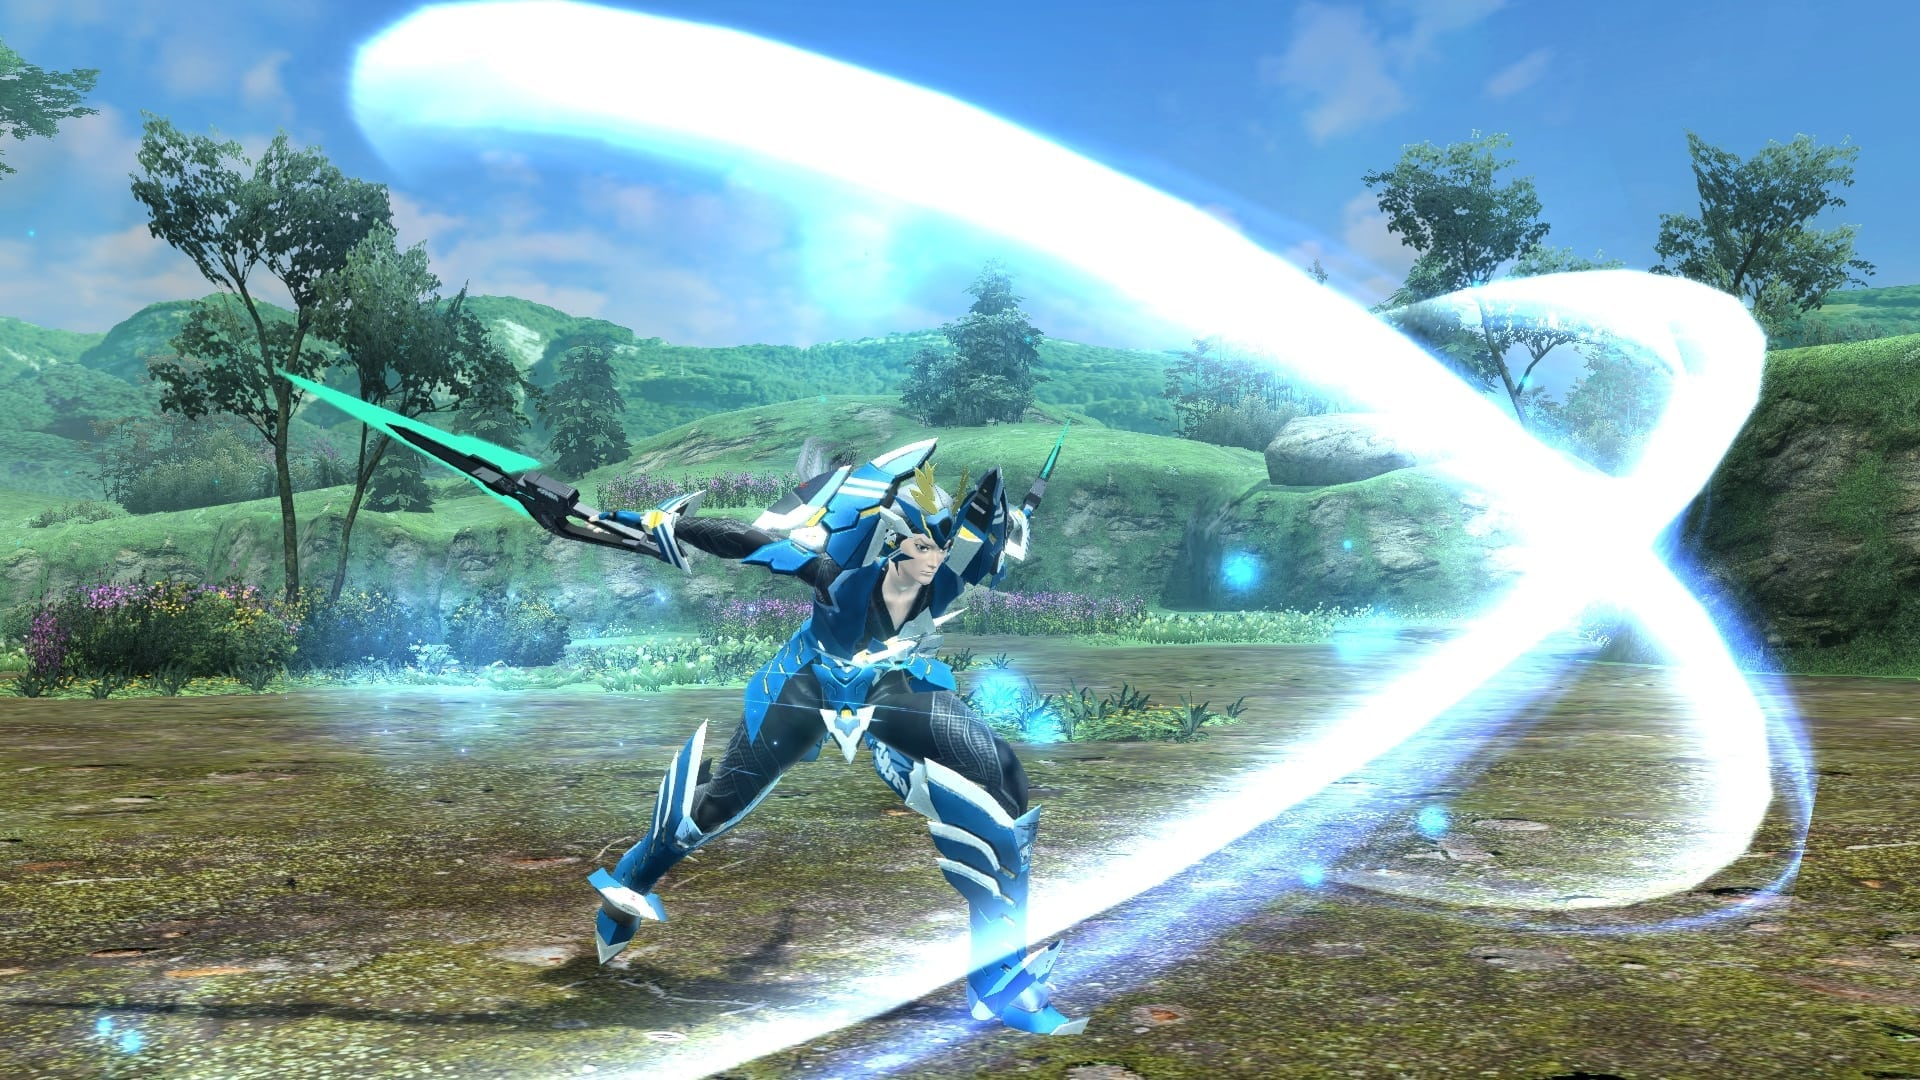 Phantasy Star Online 2 - Episode 3 Dual Blades